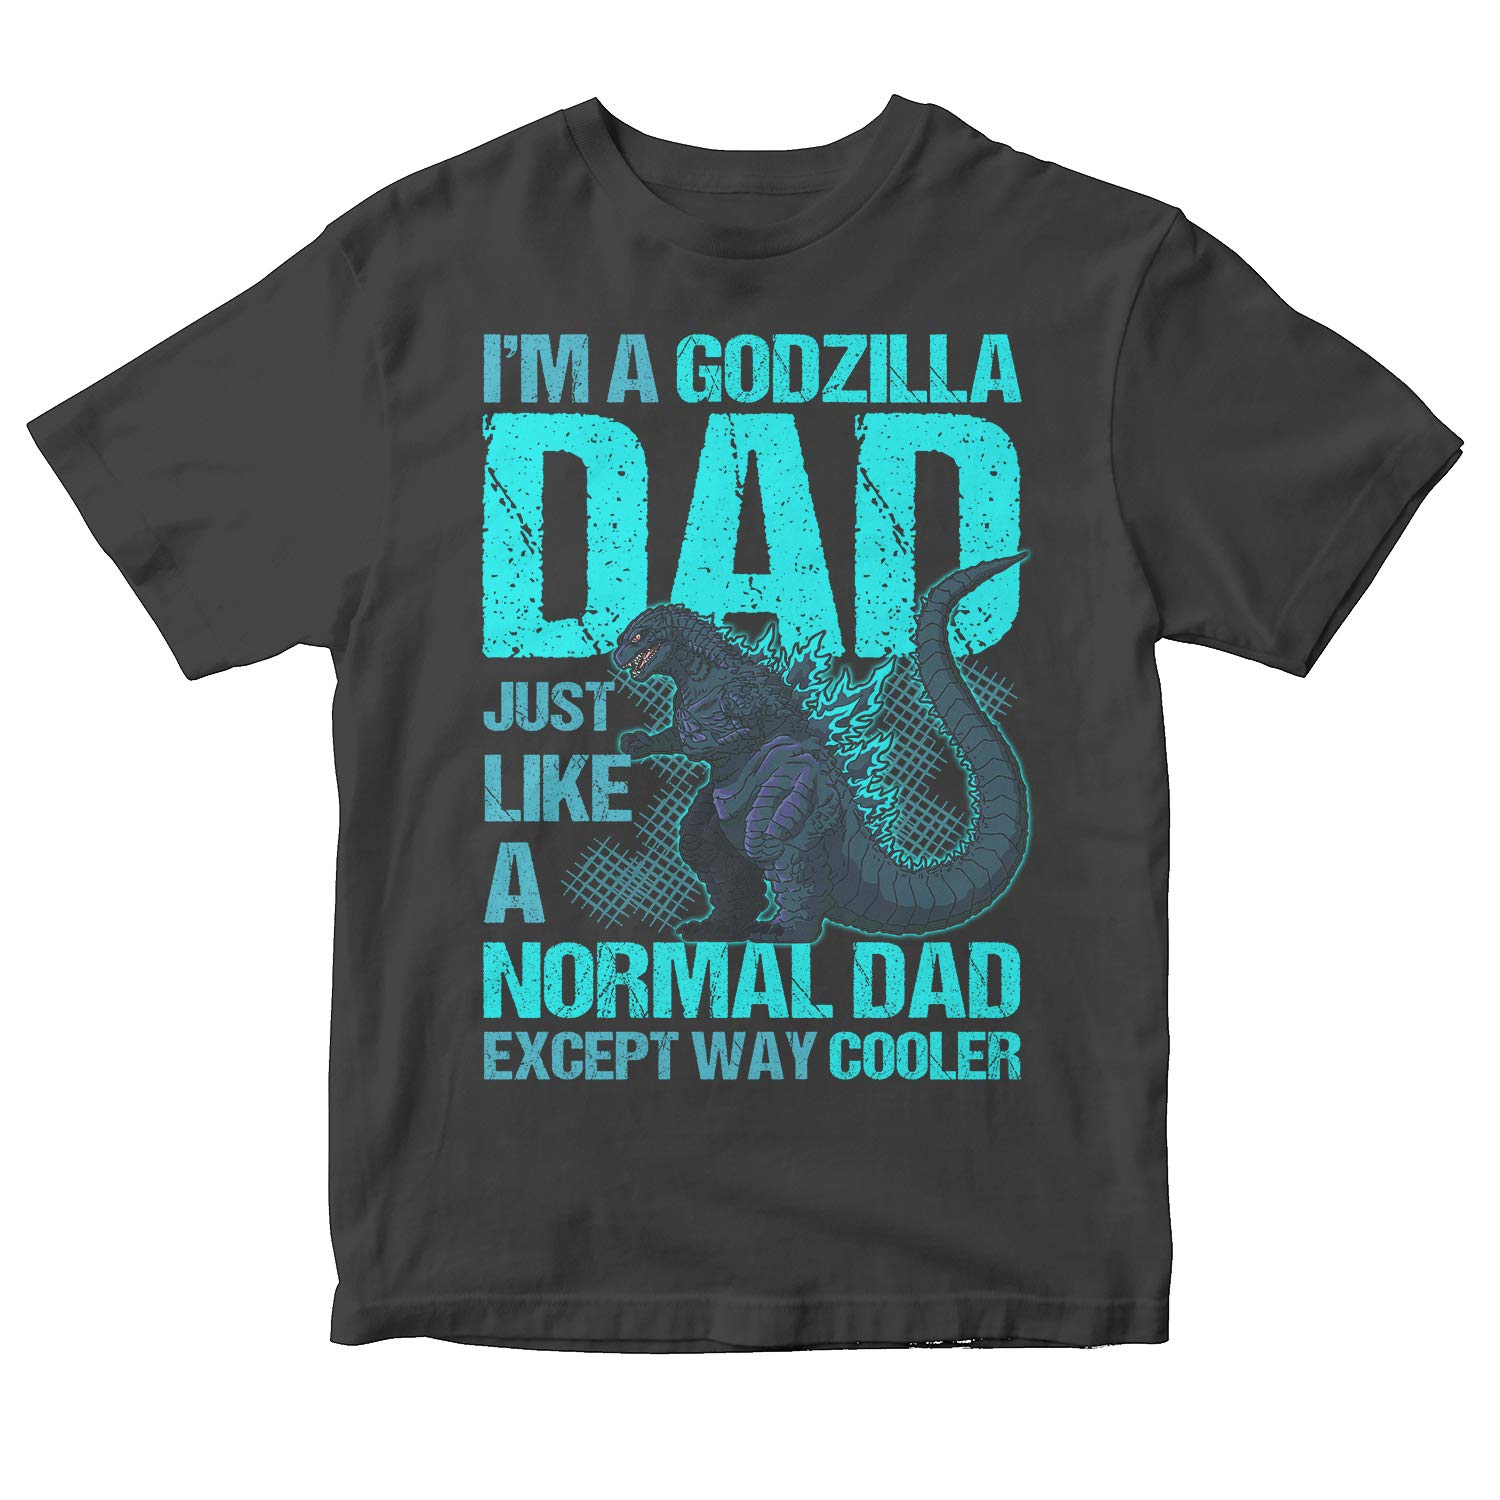 Funny Father Day Gift Shirt Daughter Father Wife Husband Father And Son Shirt Father Day Shirt I'm A Godzilla Dad Way Cooler